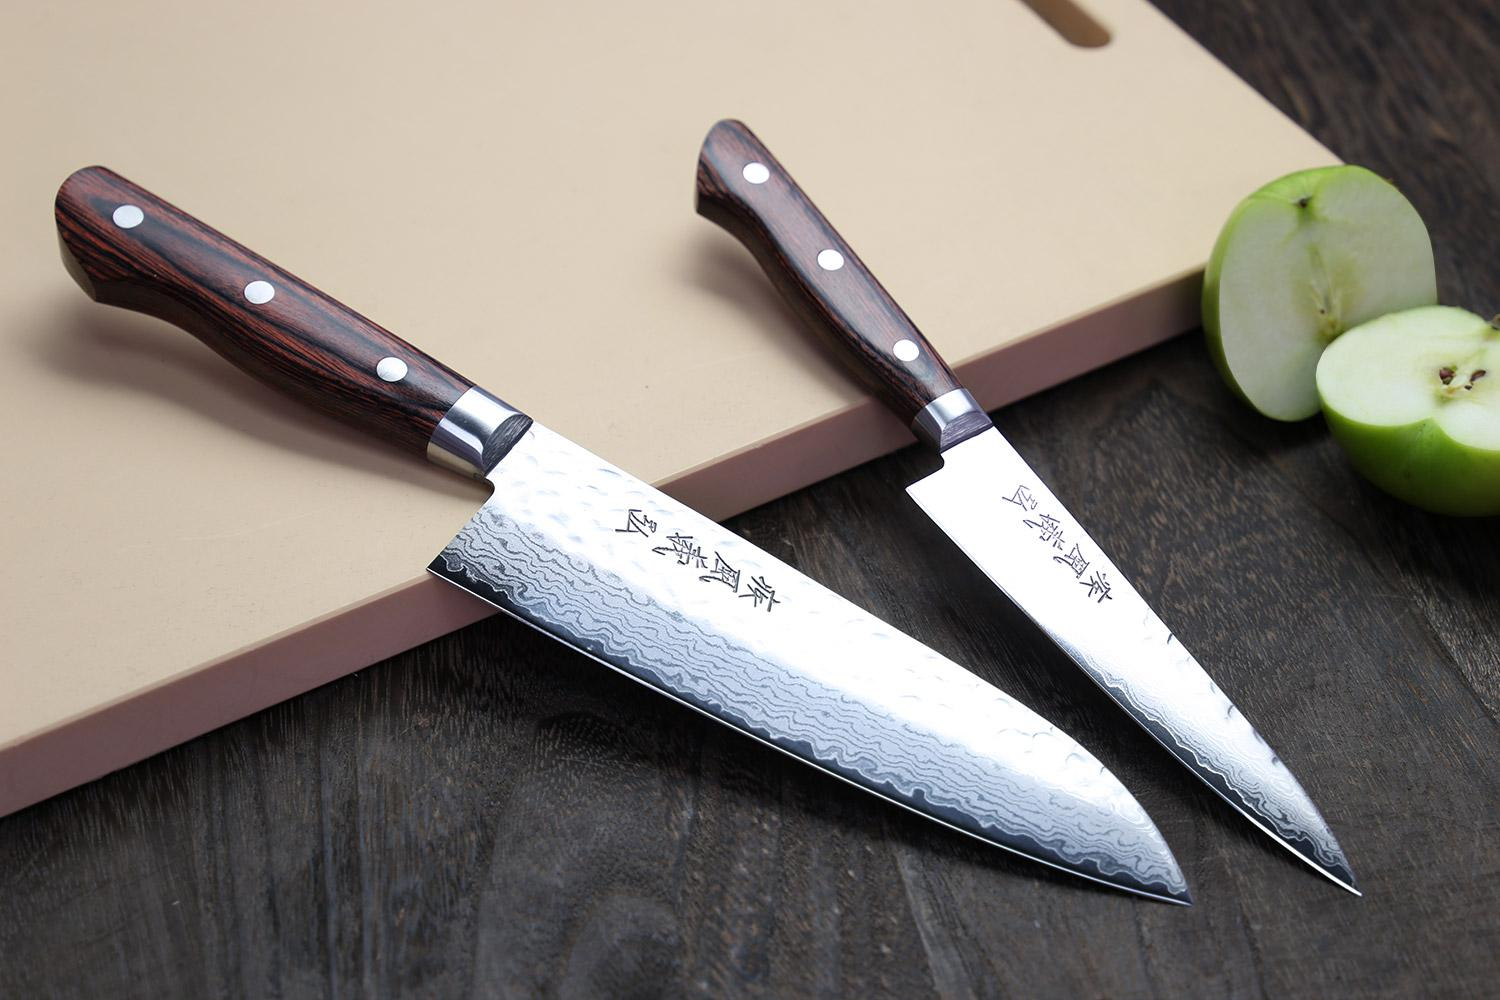 yoshihiro vg10 hammered damascus stainless japanese chefs knife santoku 7inch and. Black Bedroom Furniture Sets. Home Design Ideas